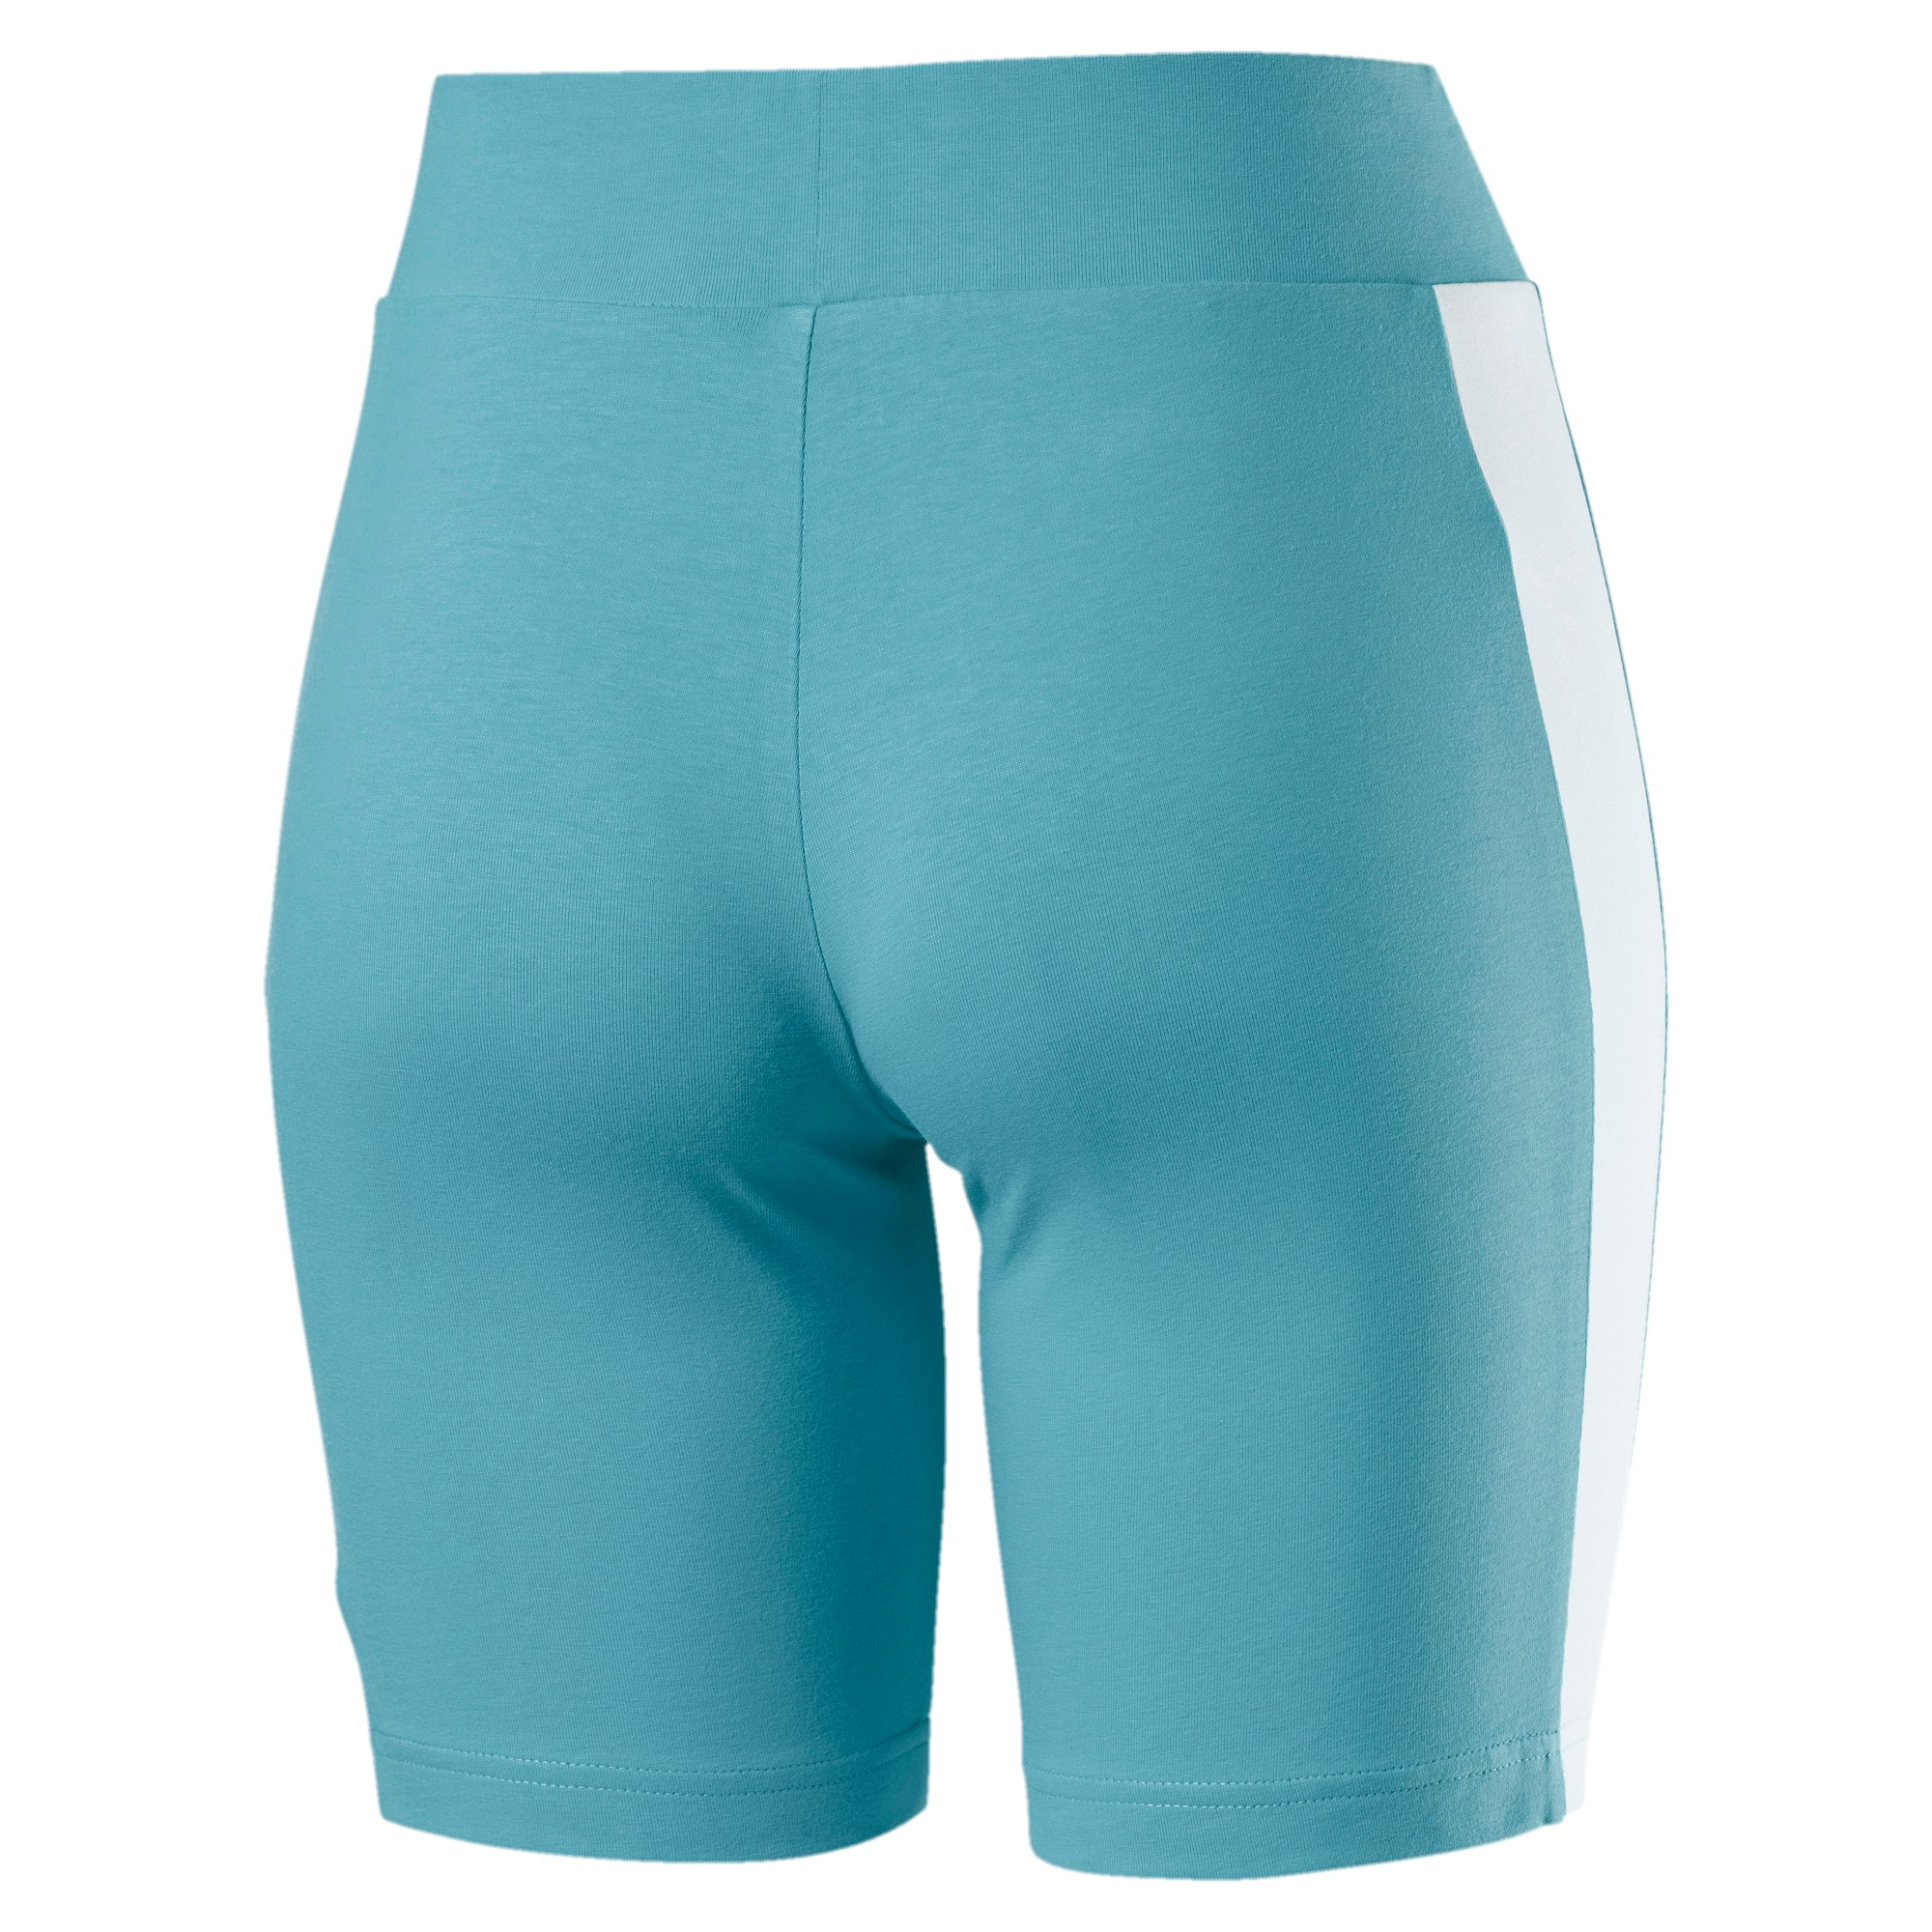 Classics T7 Women's Cycling Shorts, Milky Blue, large